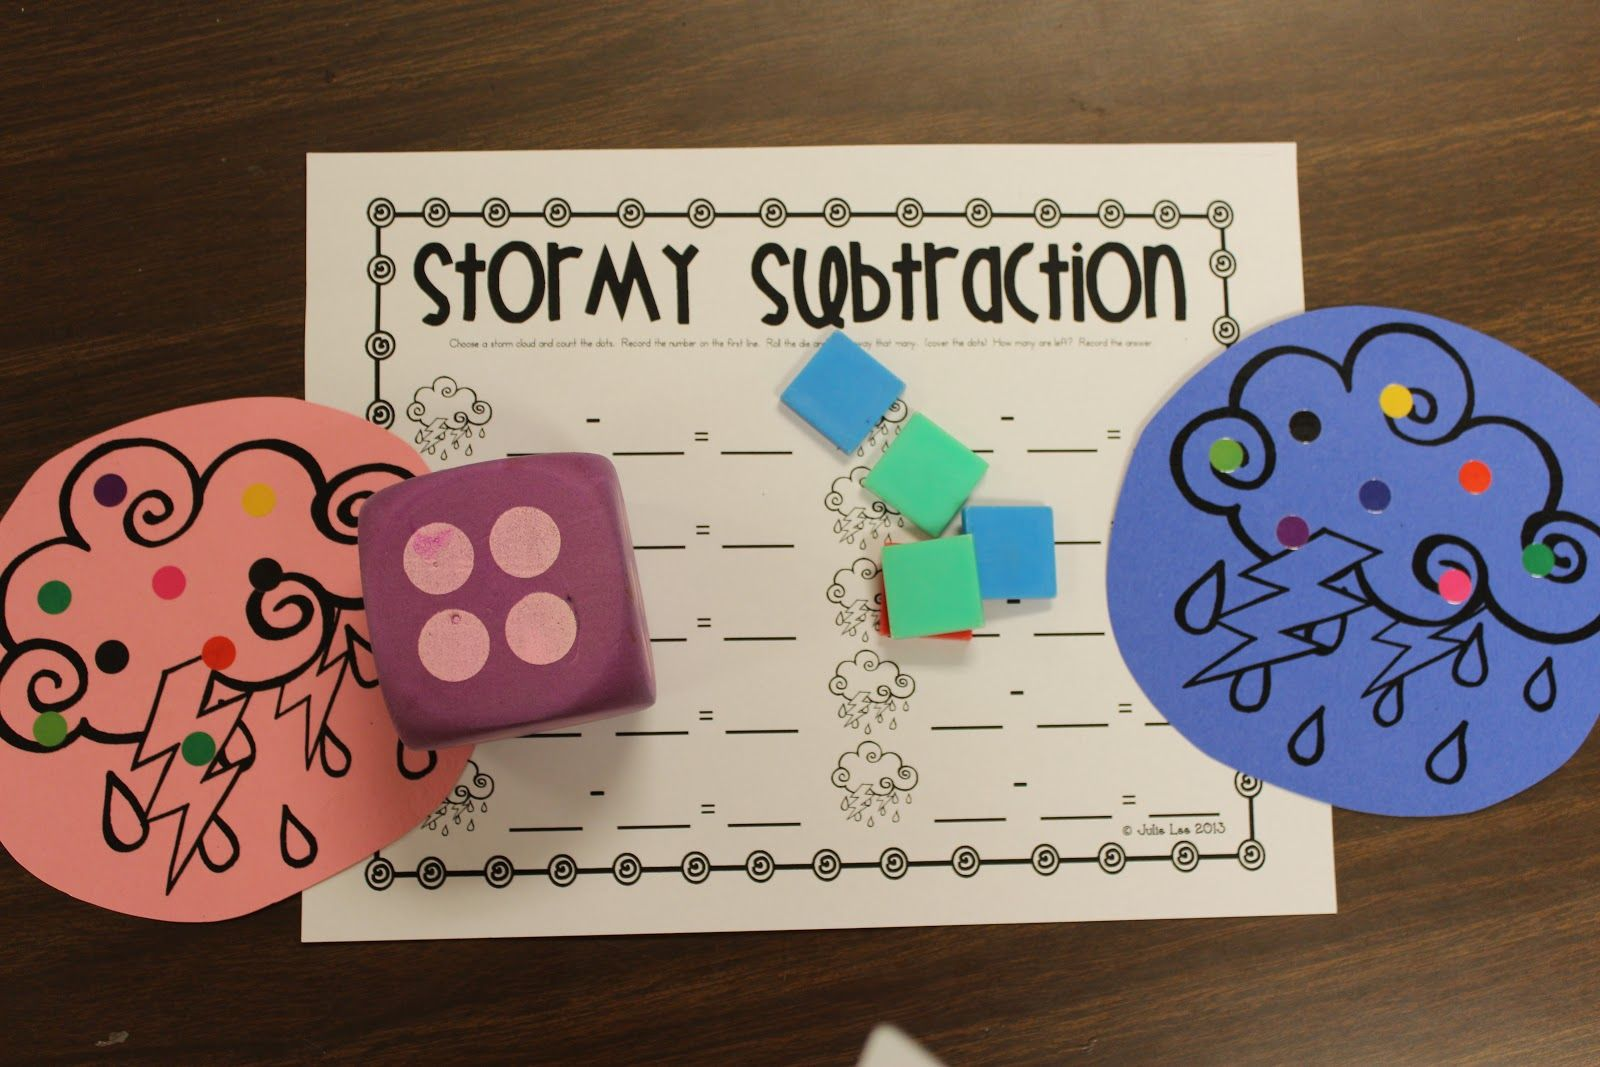 Stormy Subtraction Ey Have To Count The Dots On The